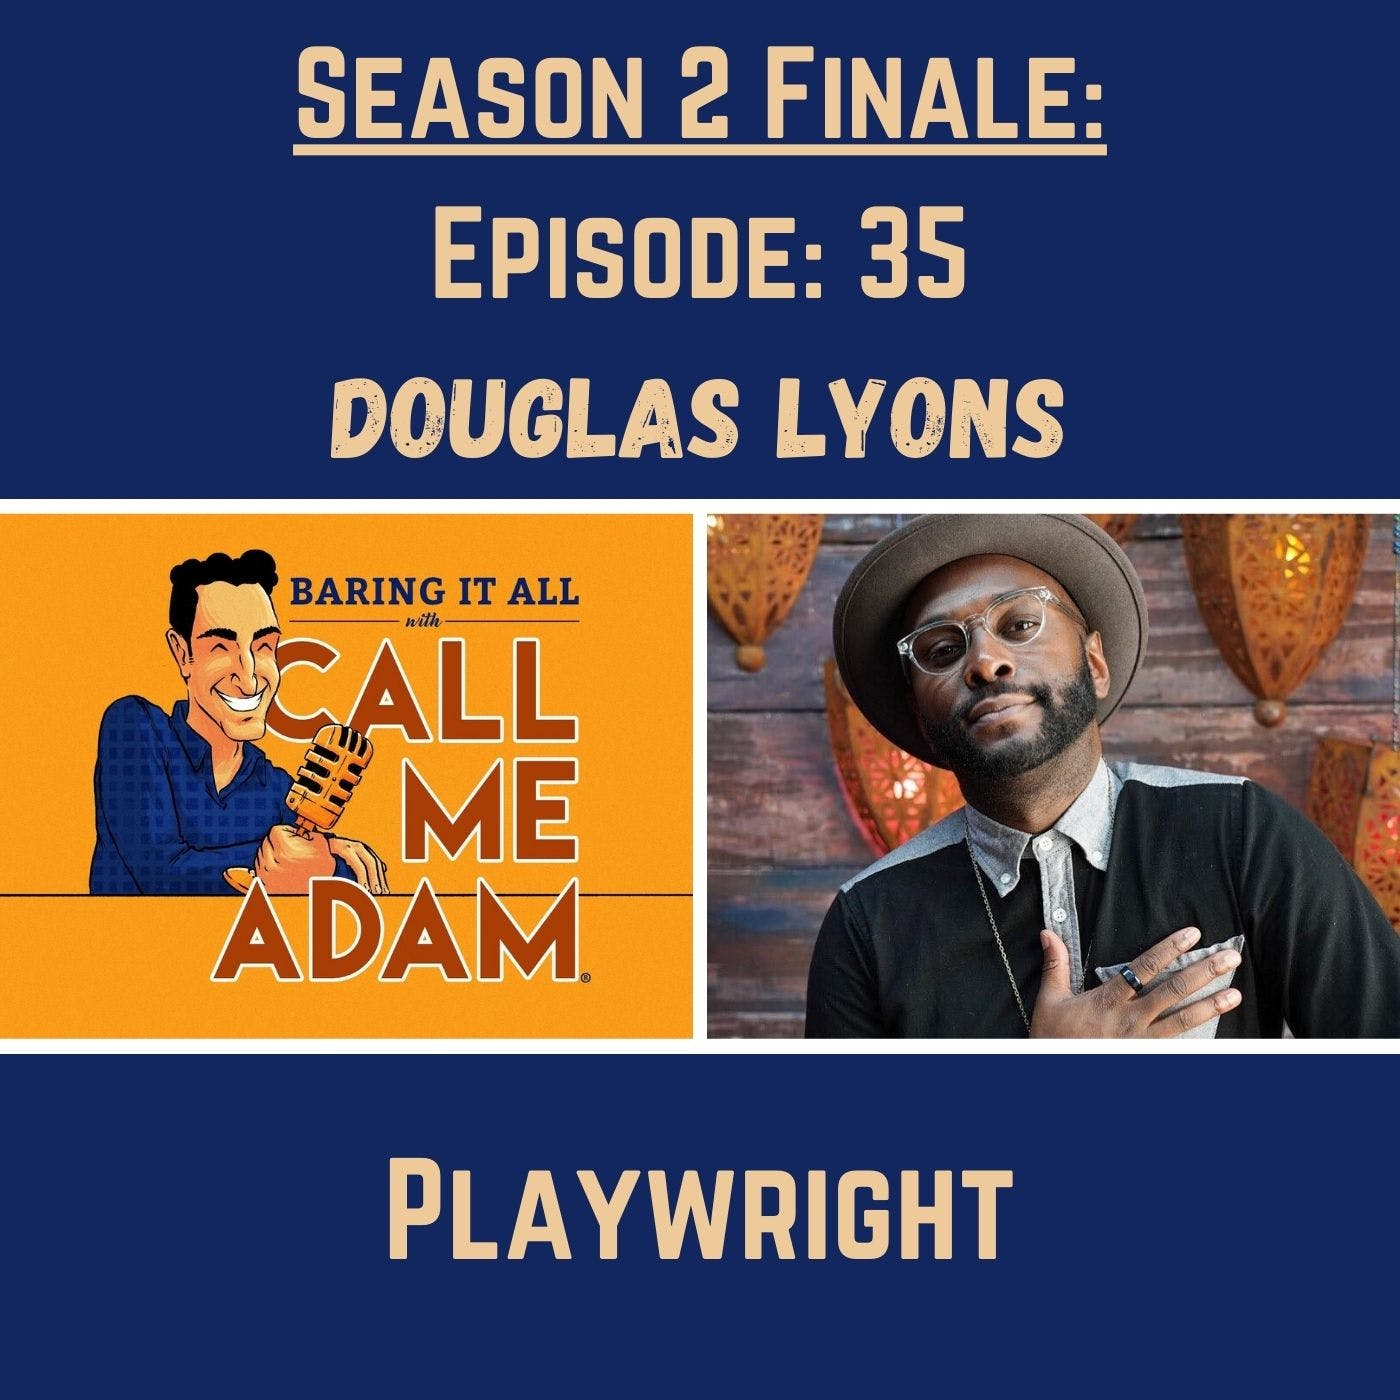 Season 2 Finale (Episode #35): Douglas Lyons: Playwright, Chicken and Biscuits, Broadway, Actor, Singer, The Book of Mormon, Beautiful: The Carole King Musical